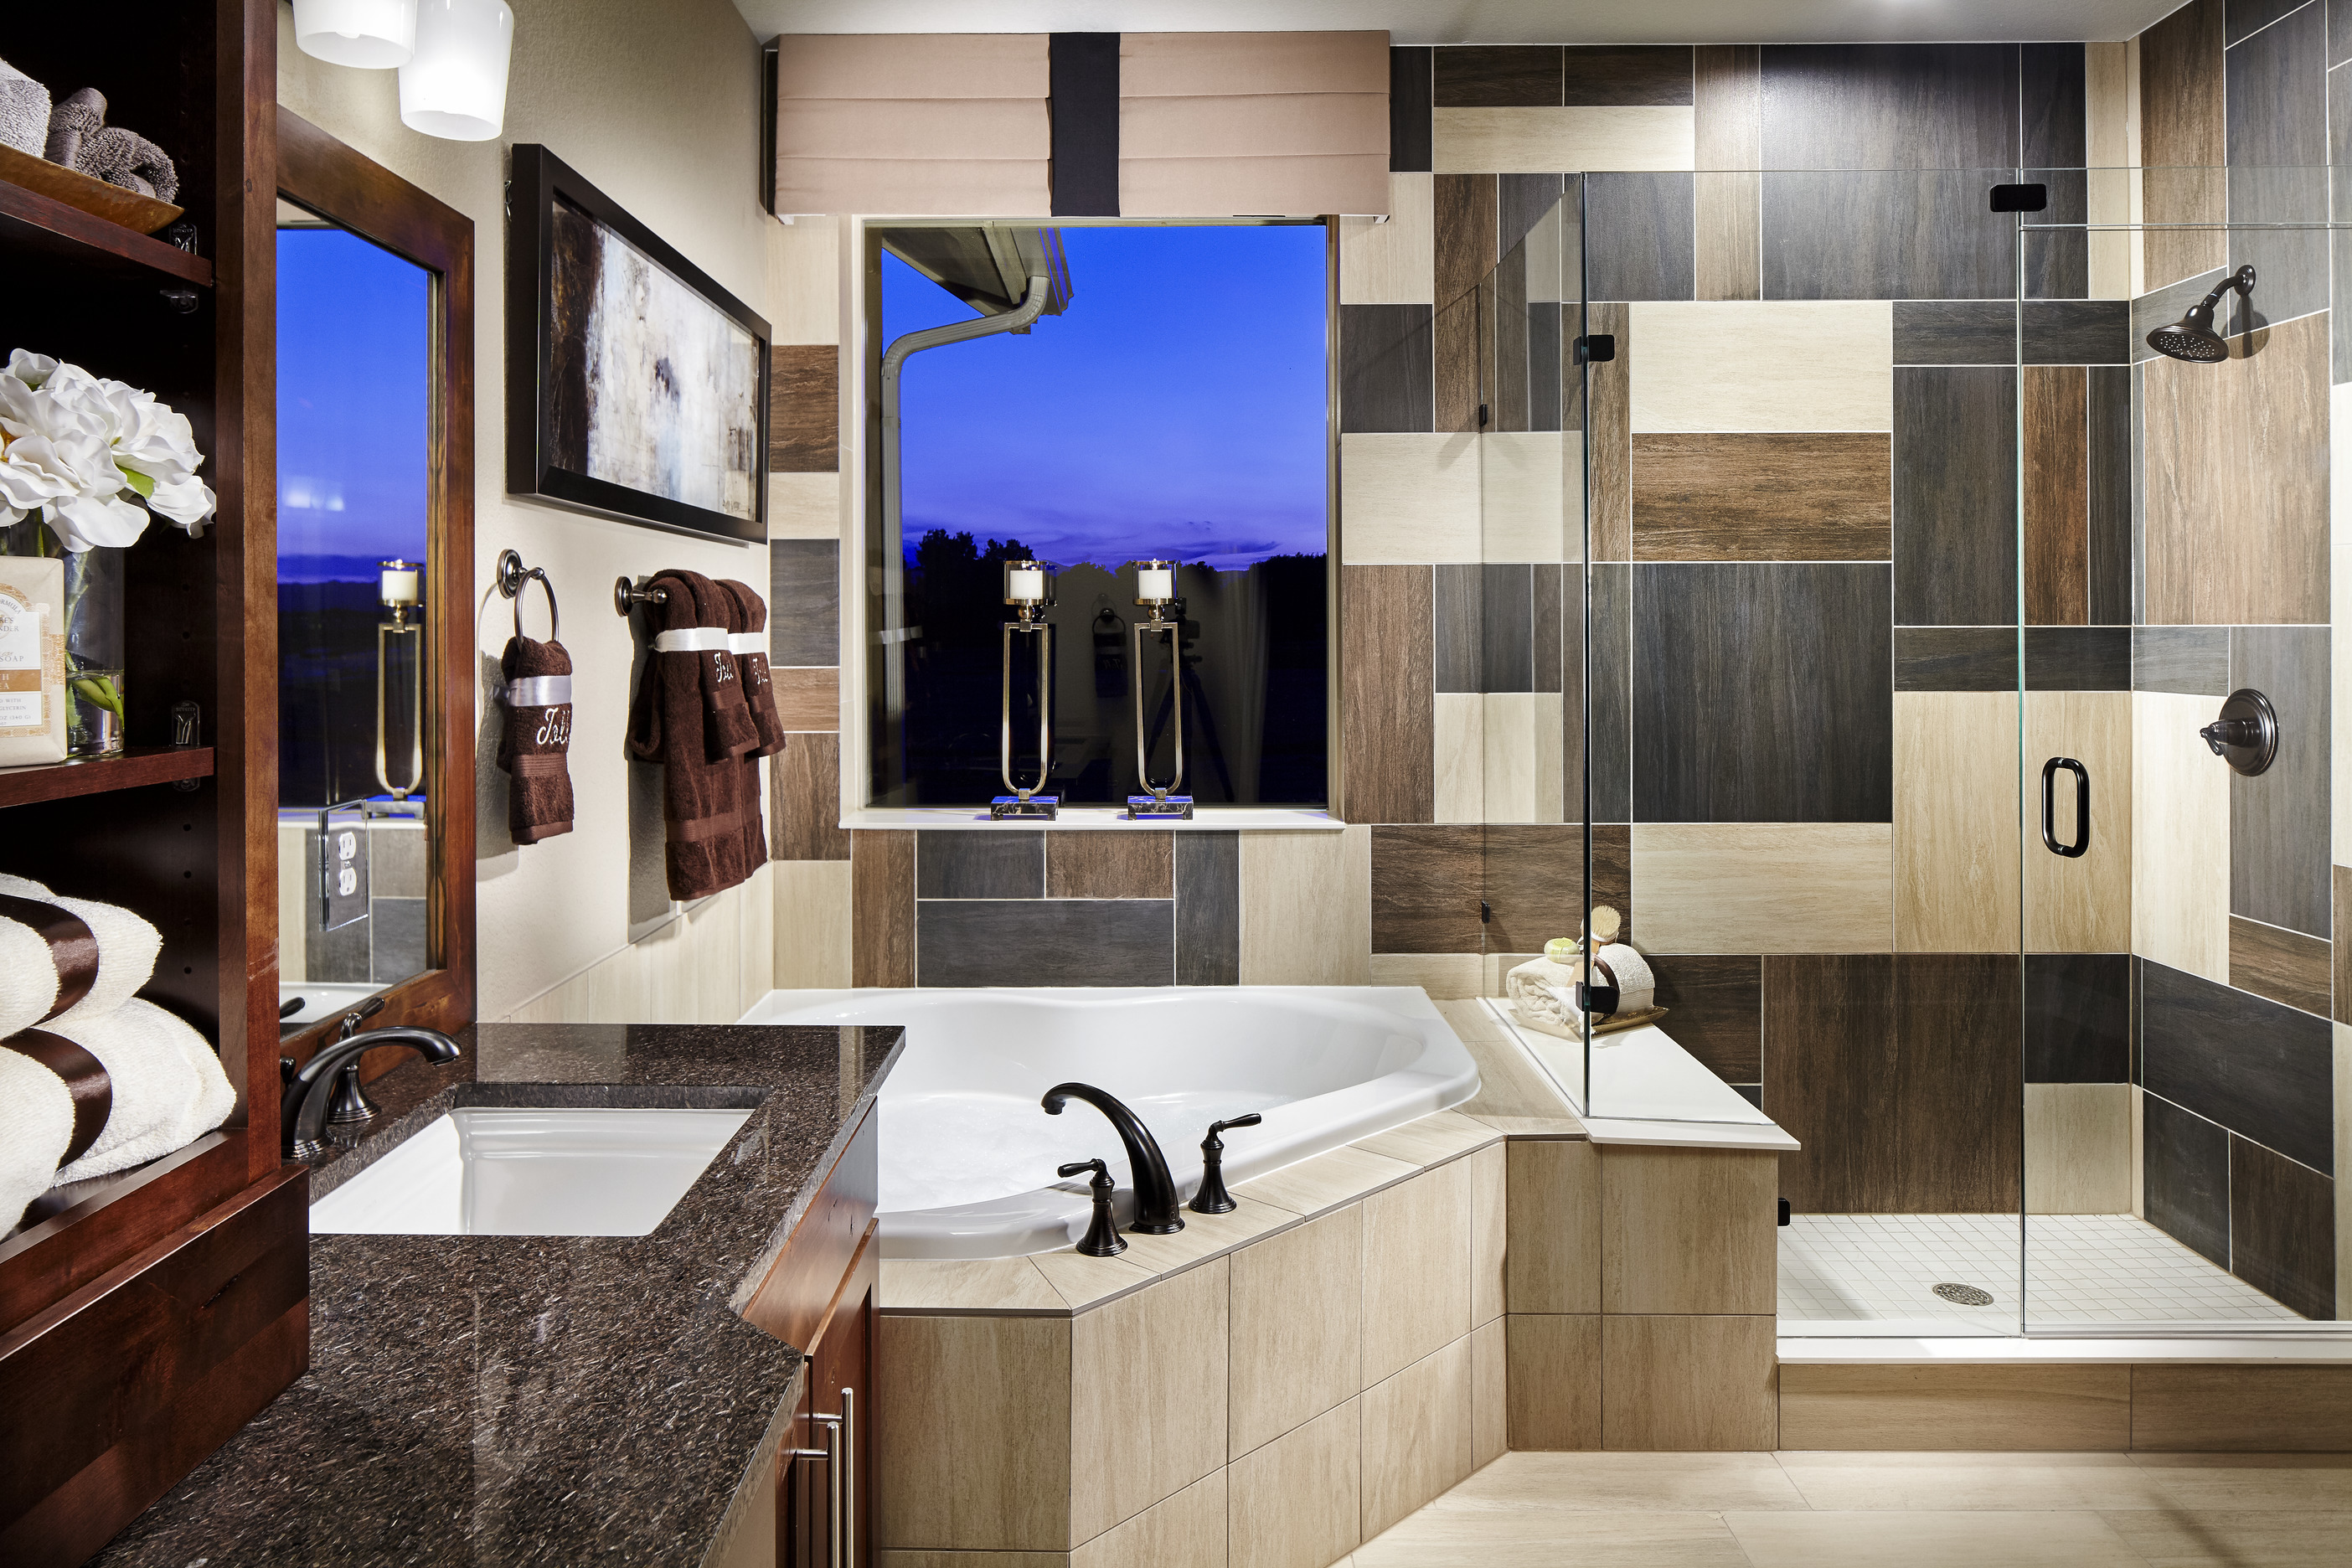 Modern bathroom with jacuzzi tub and multi colored tiles.